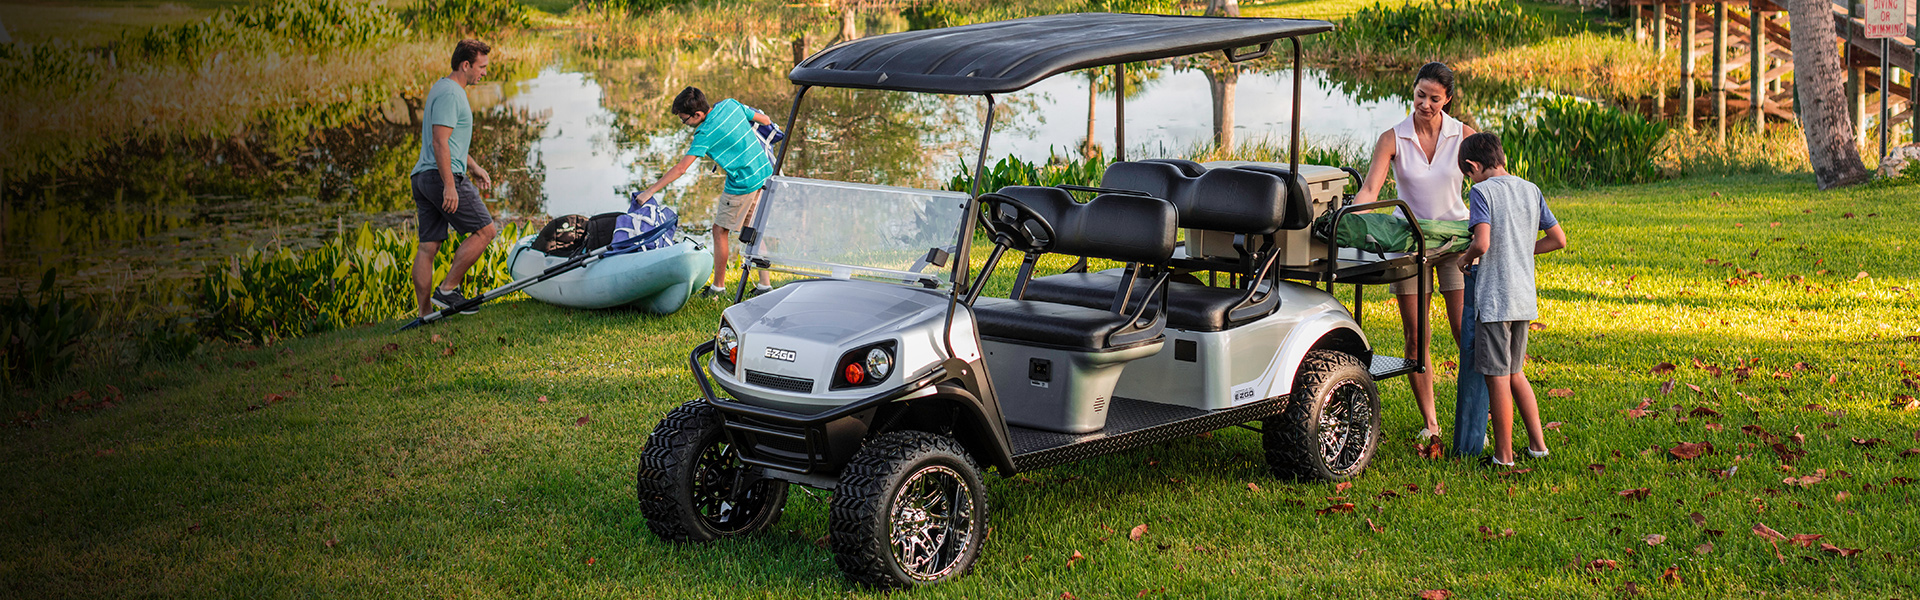 E-Z-GO - A family prepares for a day outdoors along the water after arriving on their E-Z-GO golf cart.